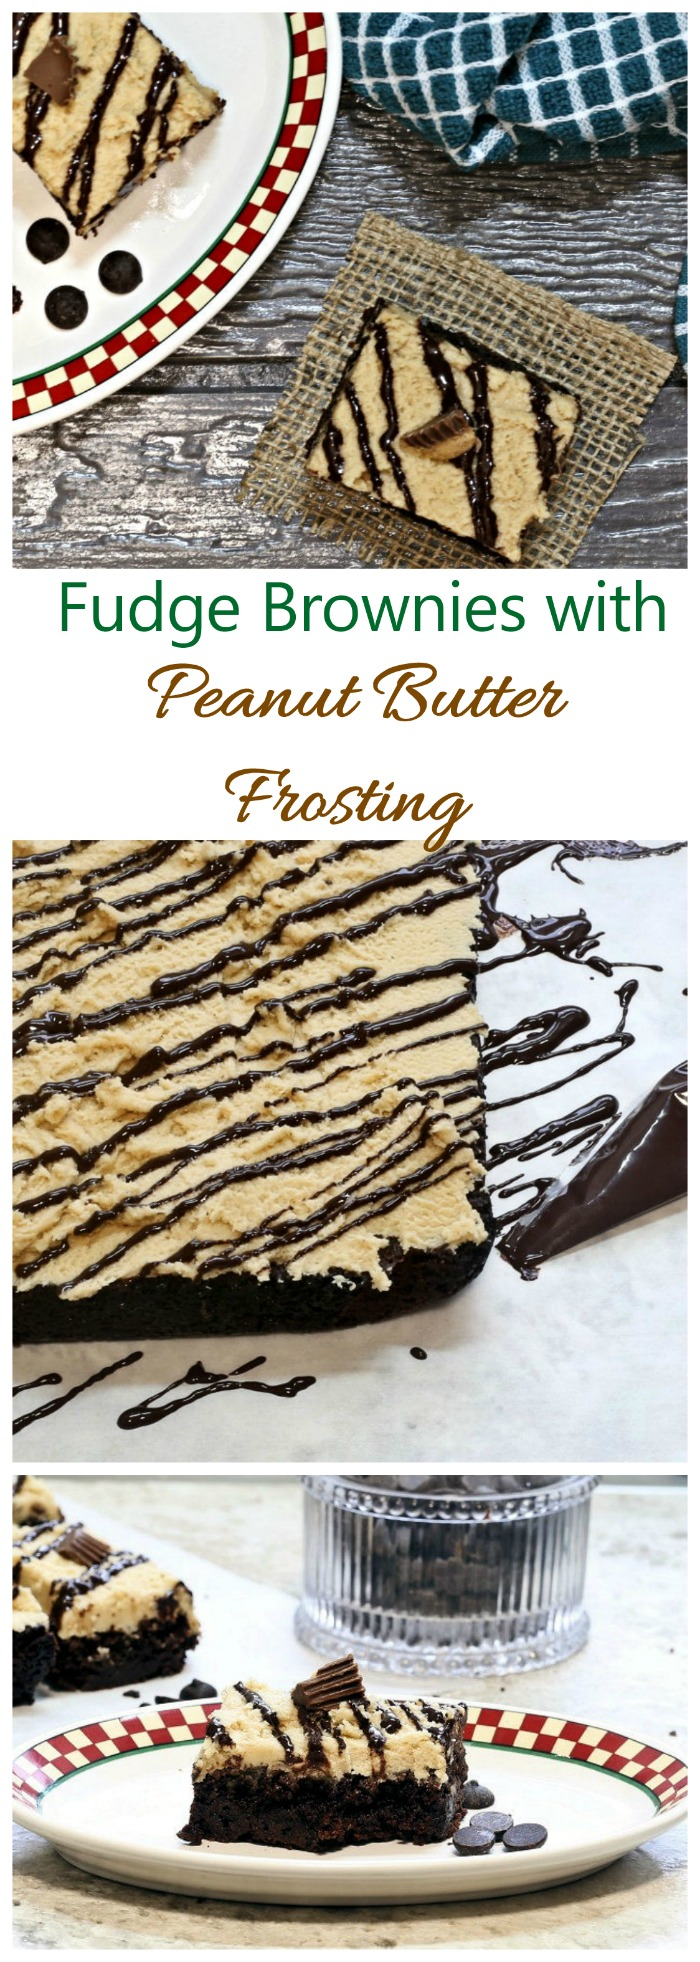 Fudge Brownies - Rich Brownie Recipe with Peanut Butter Frosting